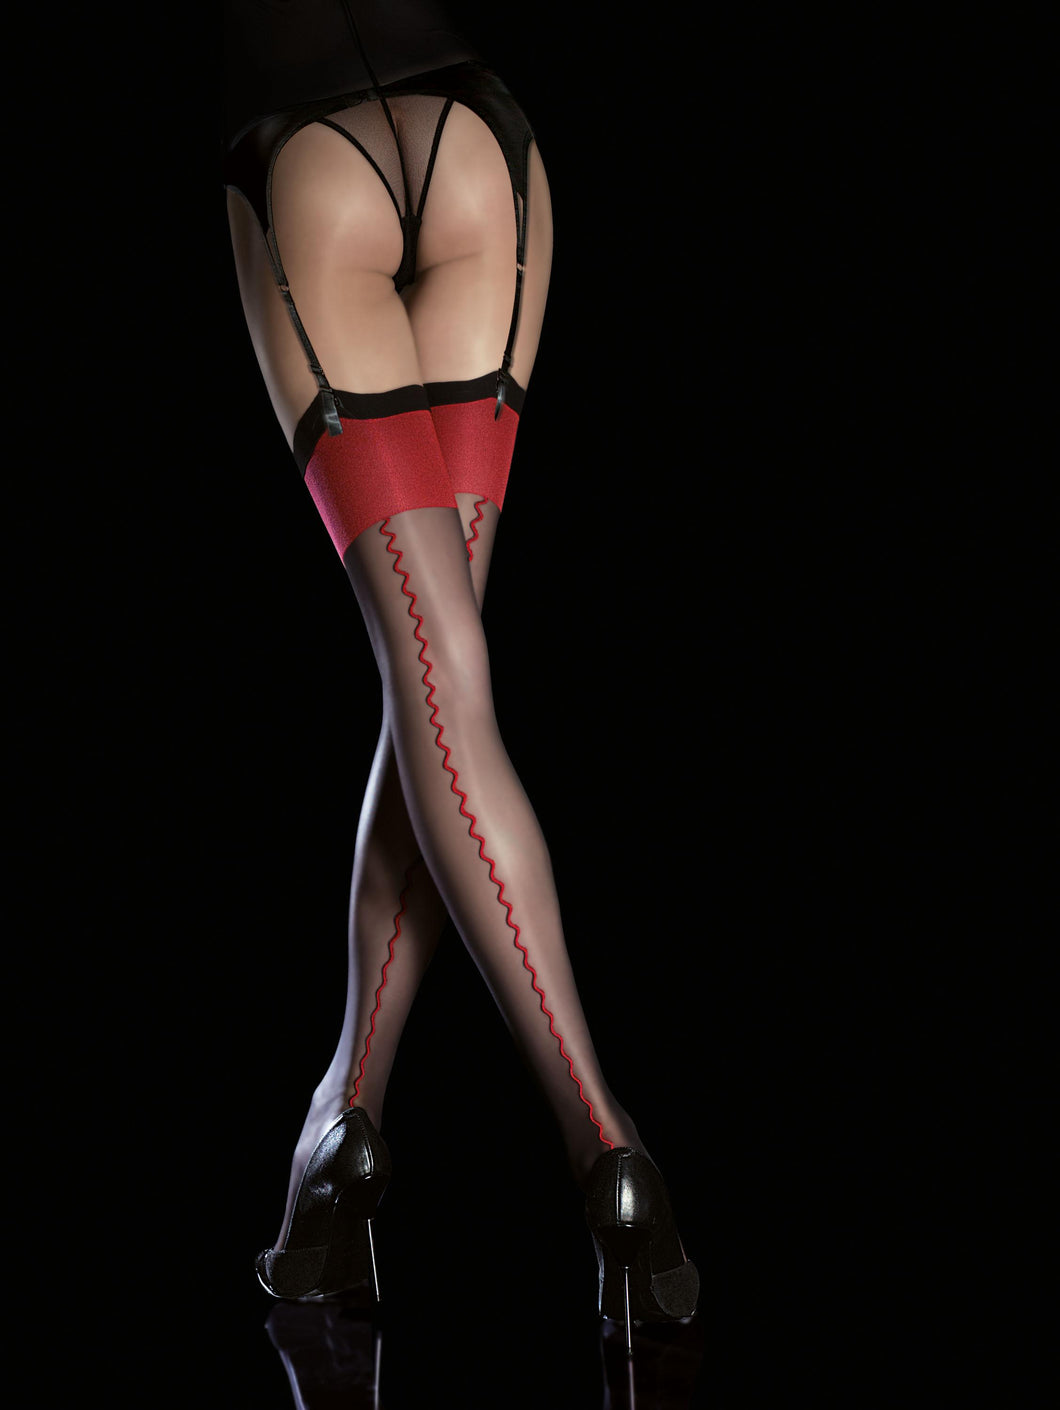 Black and Red Thigh Highs, Backseam